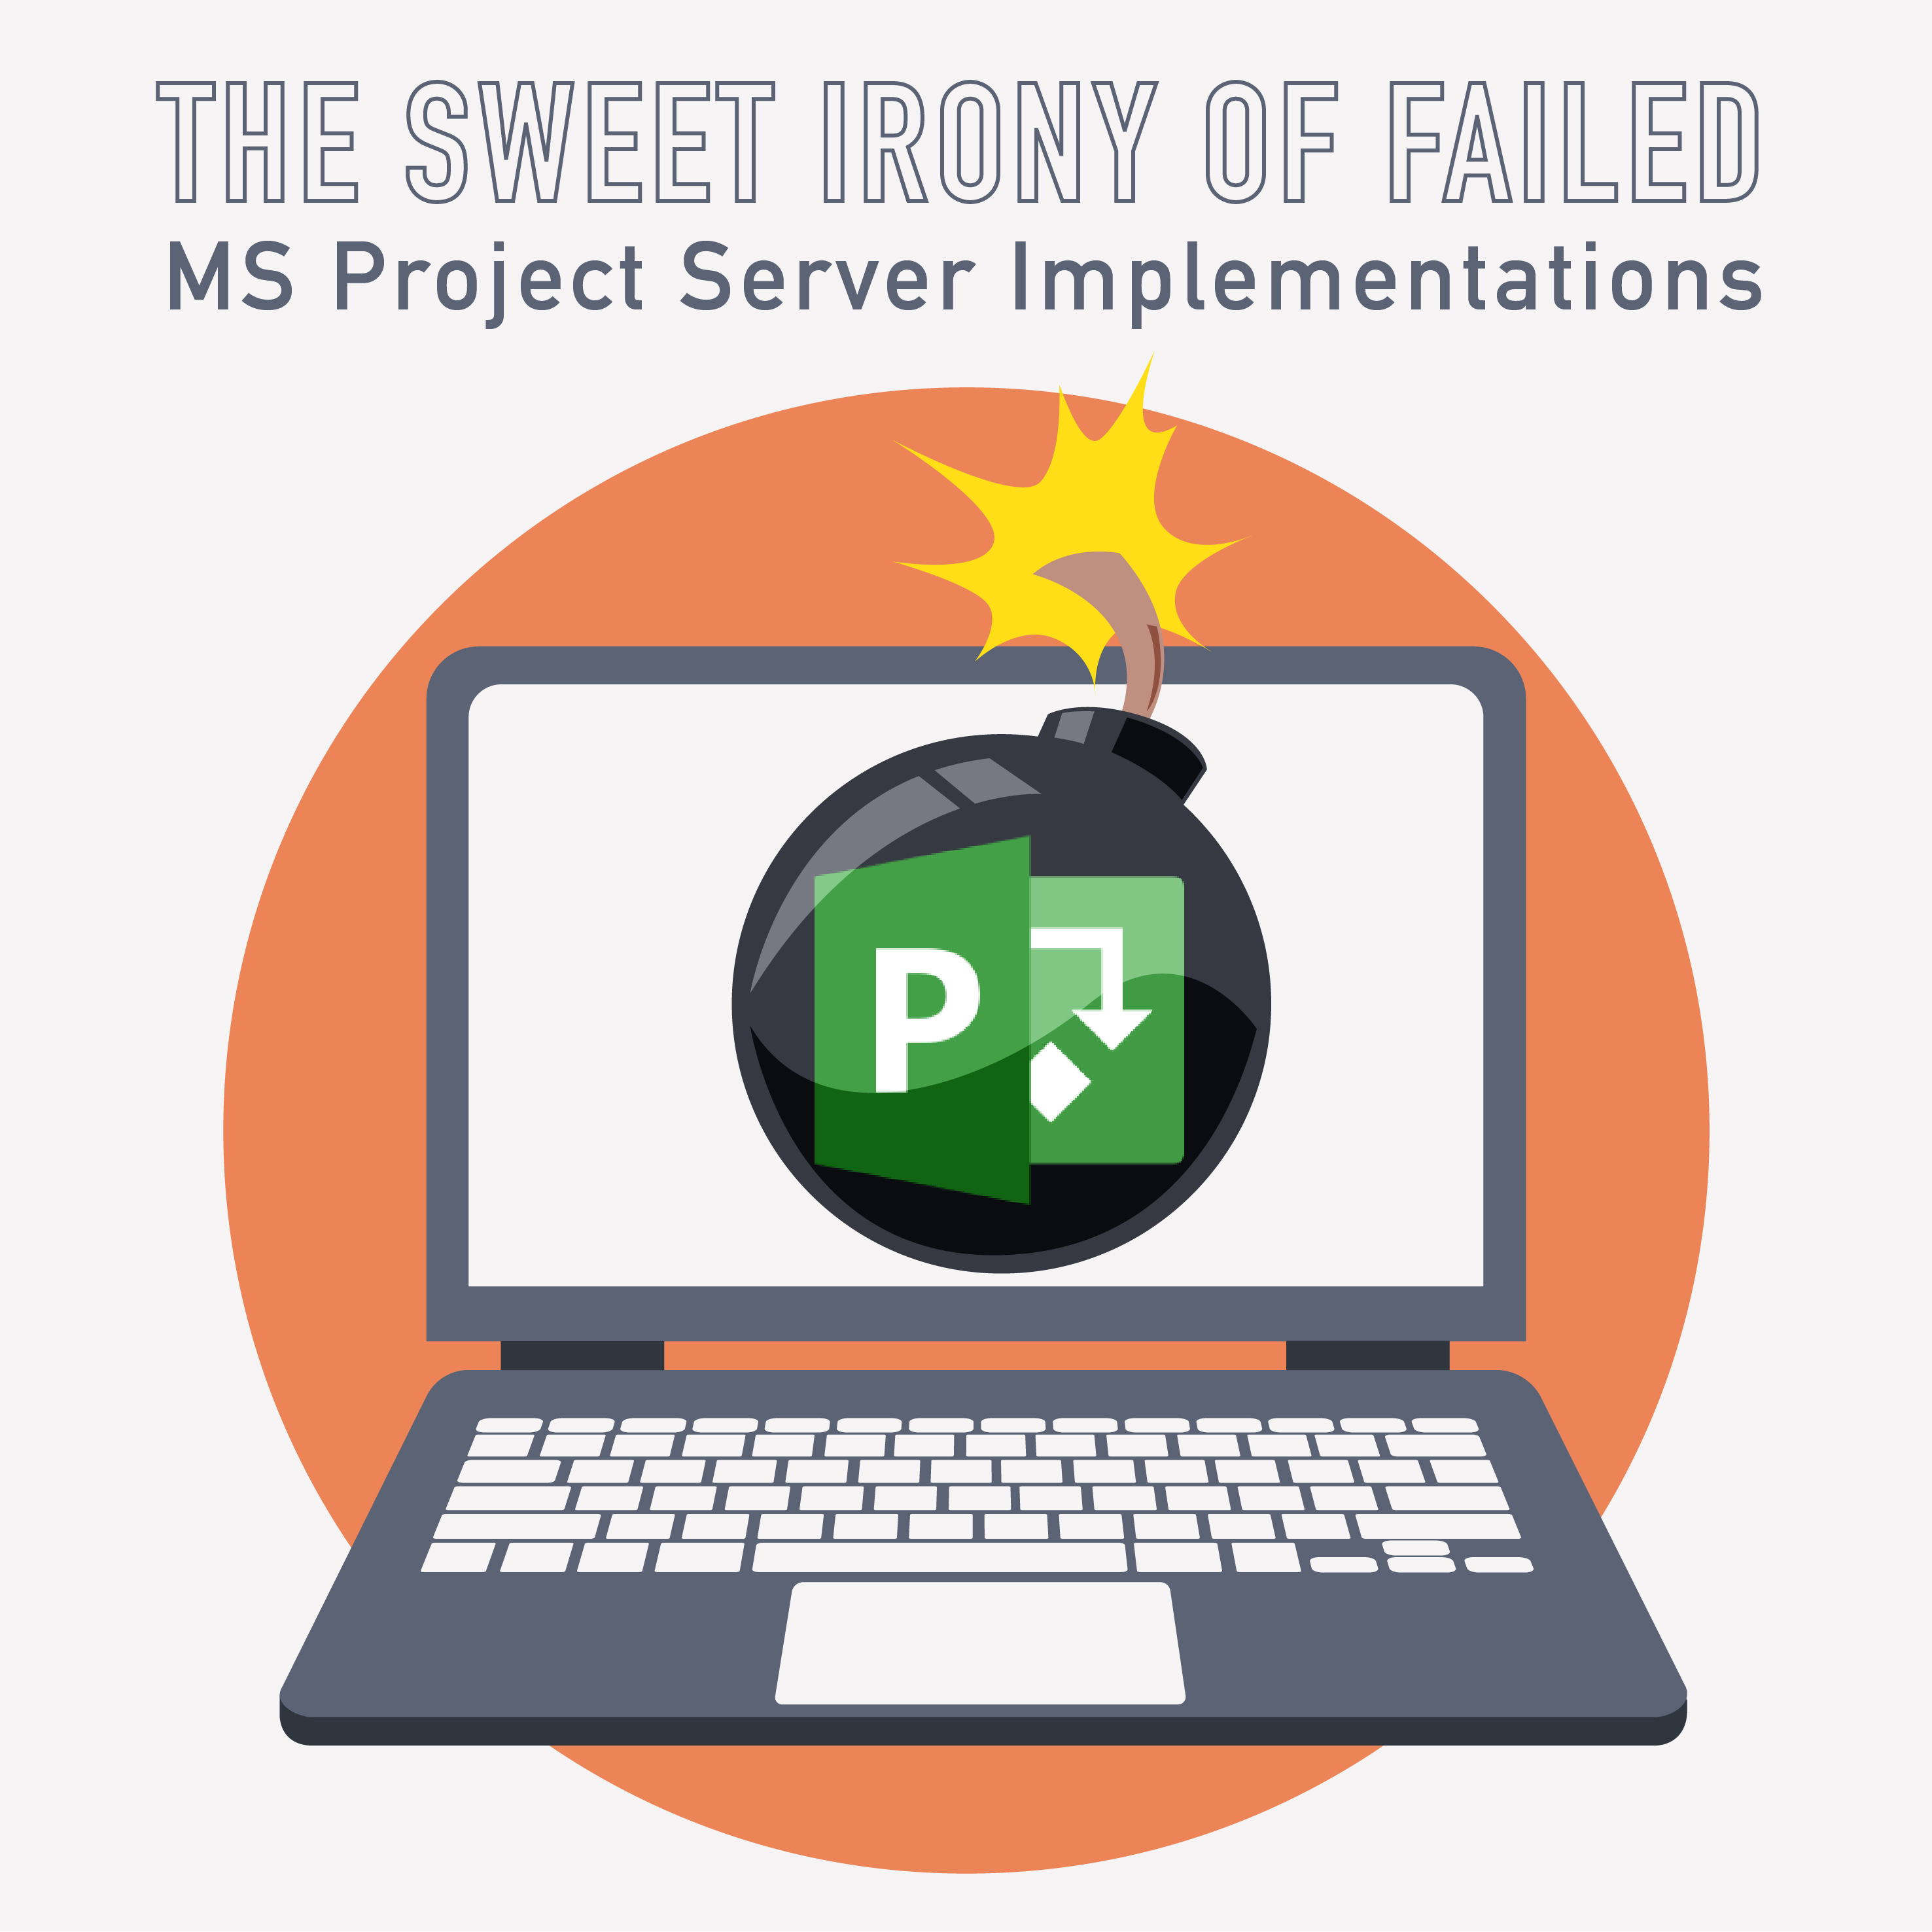 010-The Sweet Irony of Failed MS Project Server Implementations